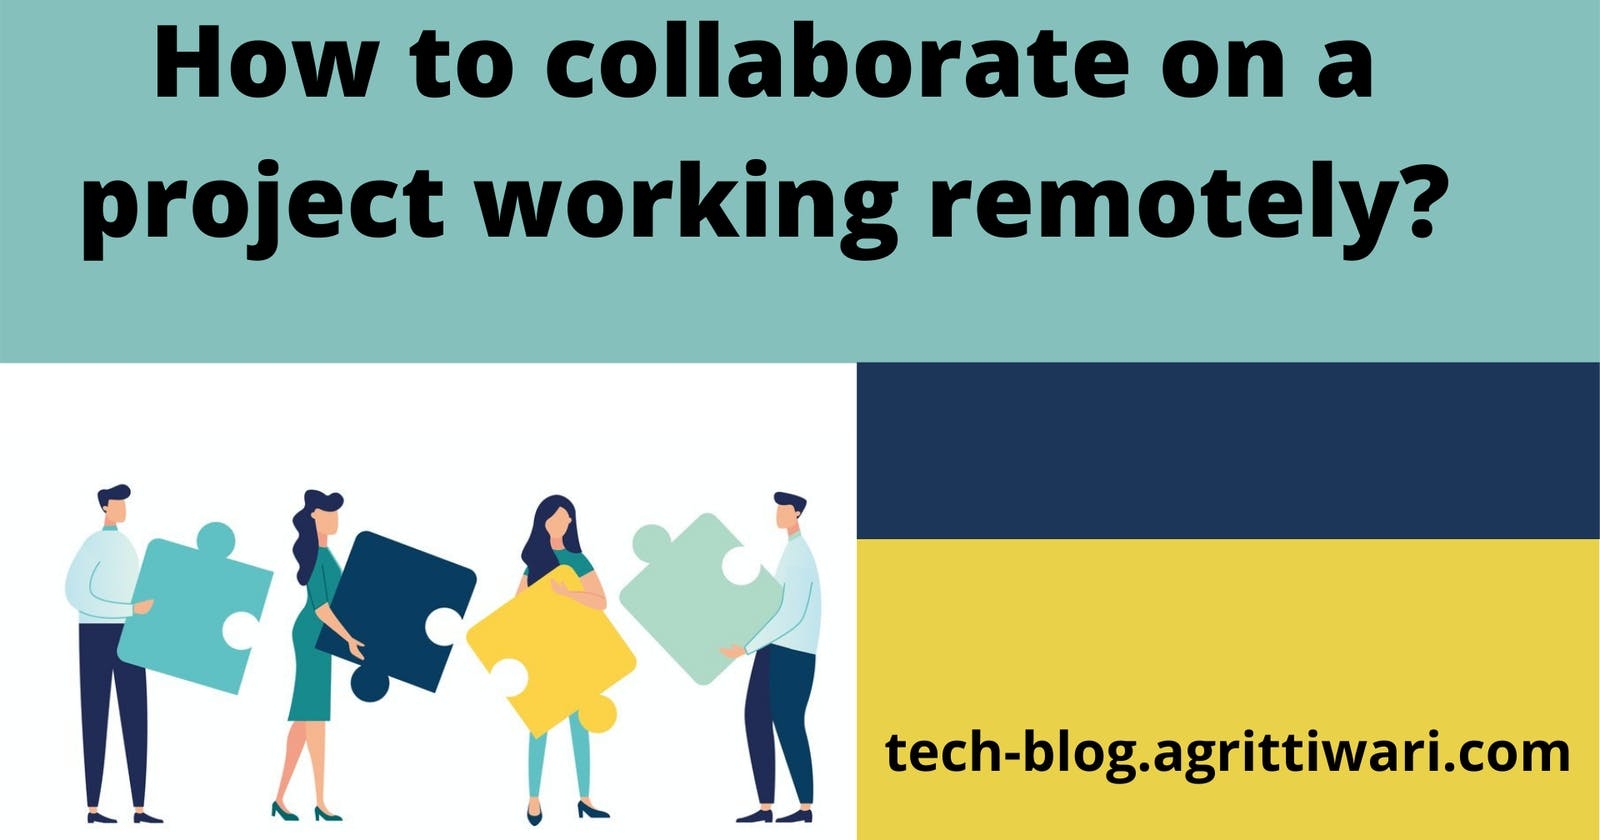 How to collaborate on a project working remotely?